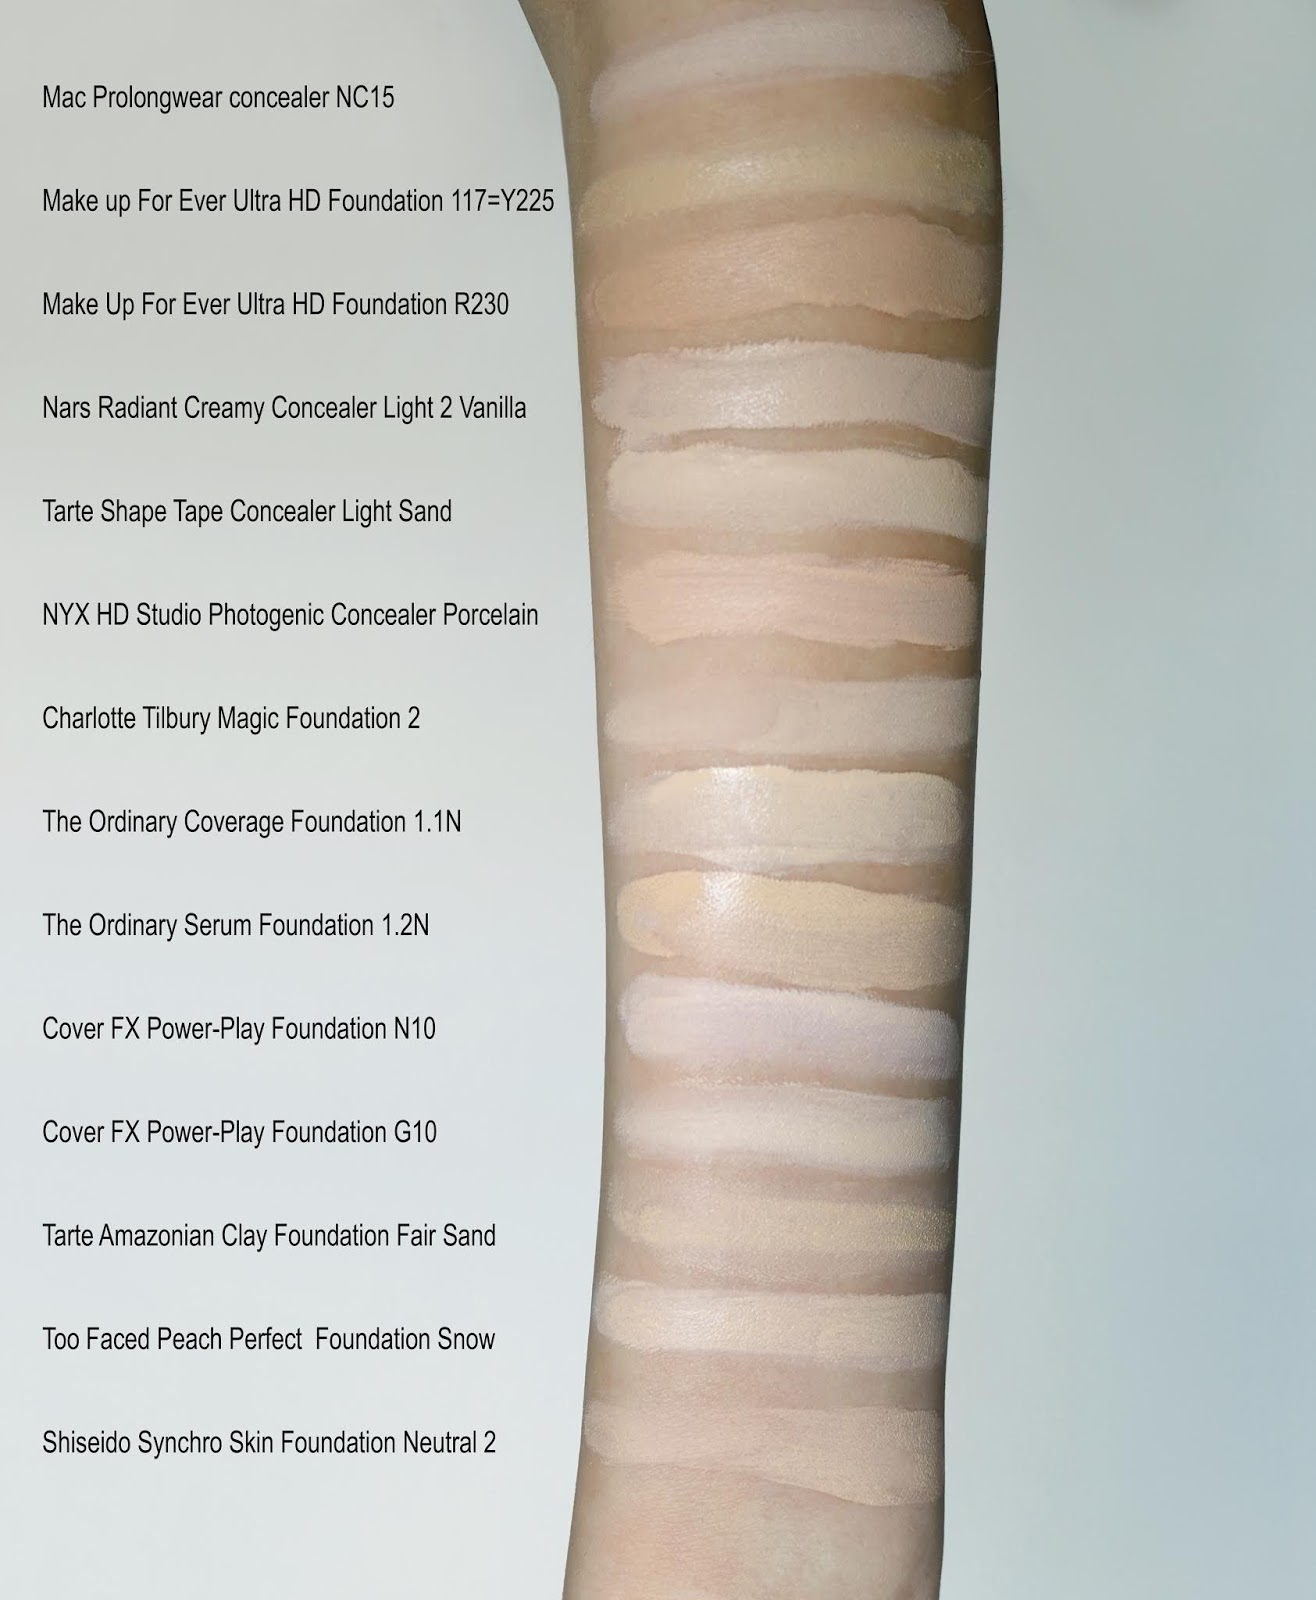 Power Play Concealer by Cover FX #11